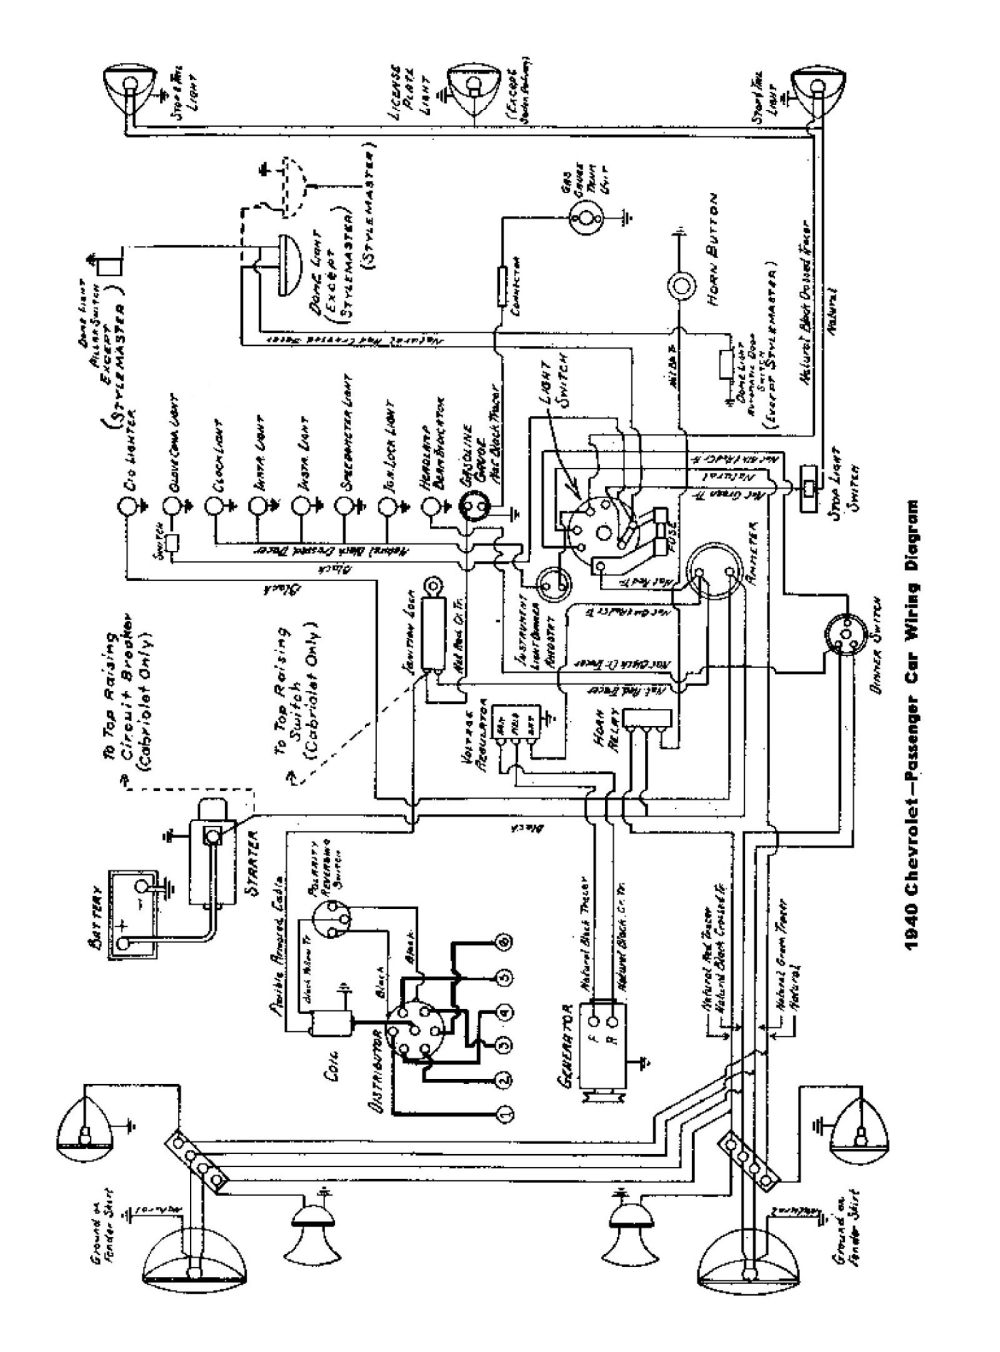 medium resolution of chevy wiring diagrams 1936 chevy wiring diagram 1940 chevy wiring diagram